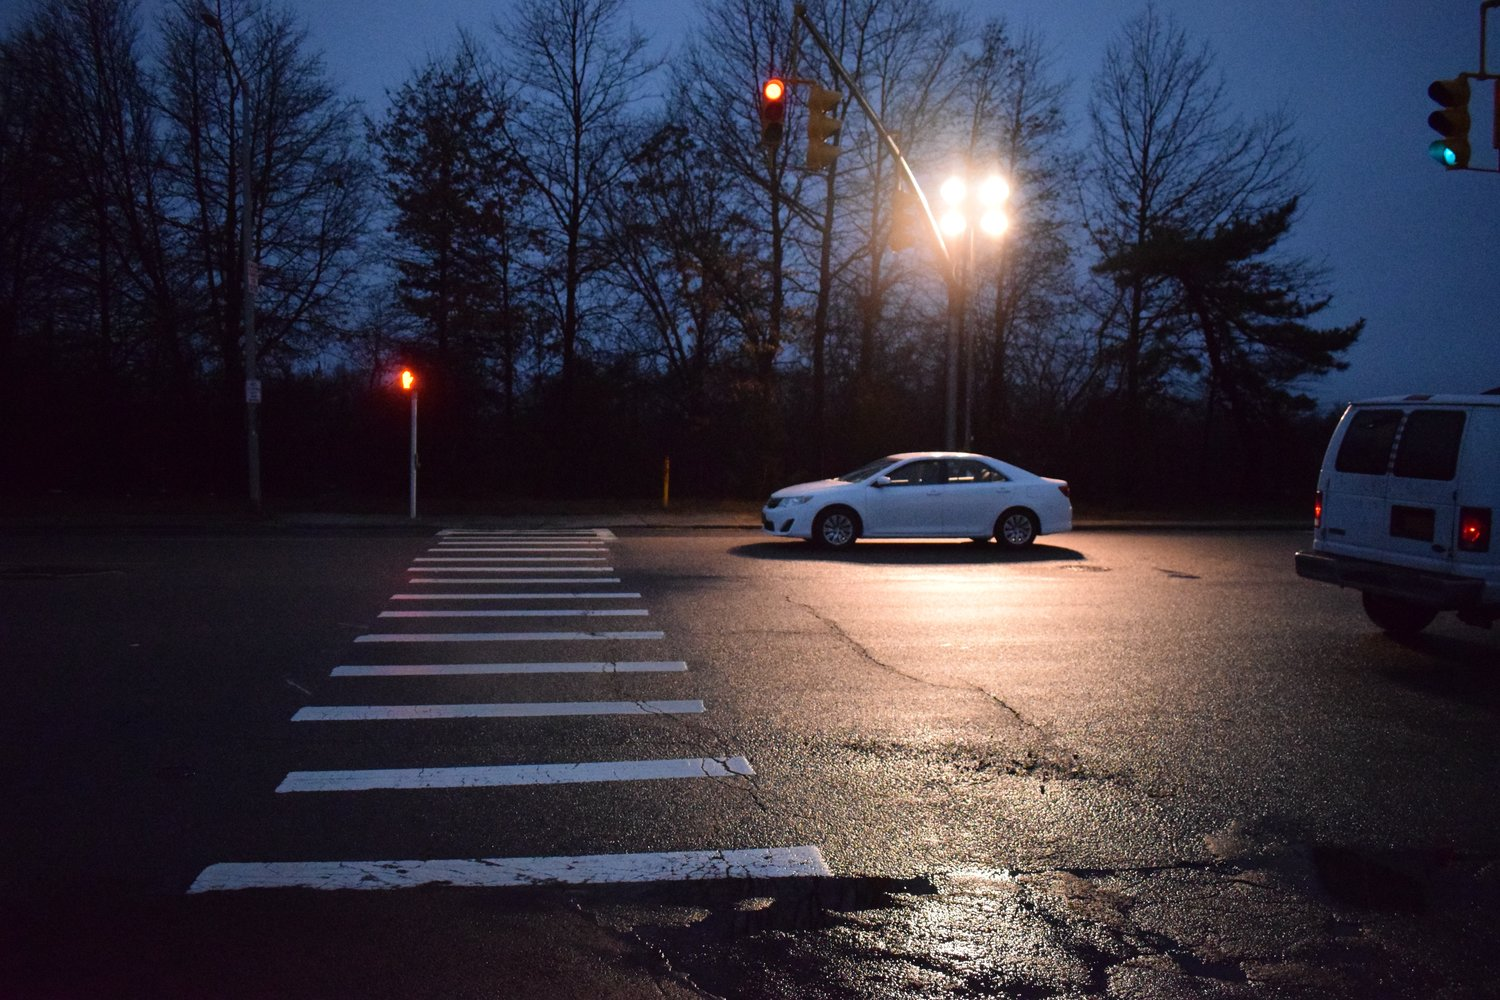 A 16-year-old Elmont Memorial High School student was struck at the intersection as he was heading for the school's winter concert on Dec. 20. The county had placed temporary floodlights to increase the visibility in the area for students.